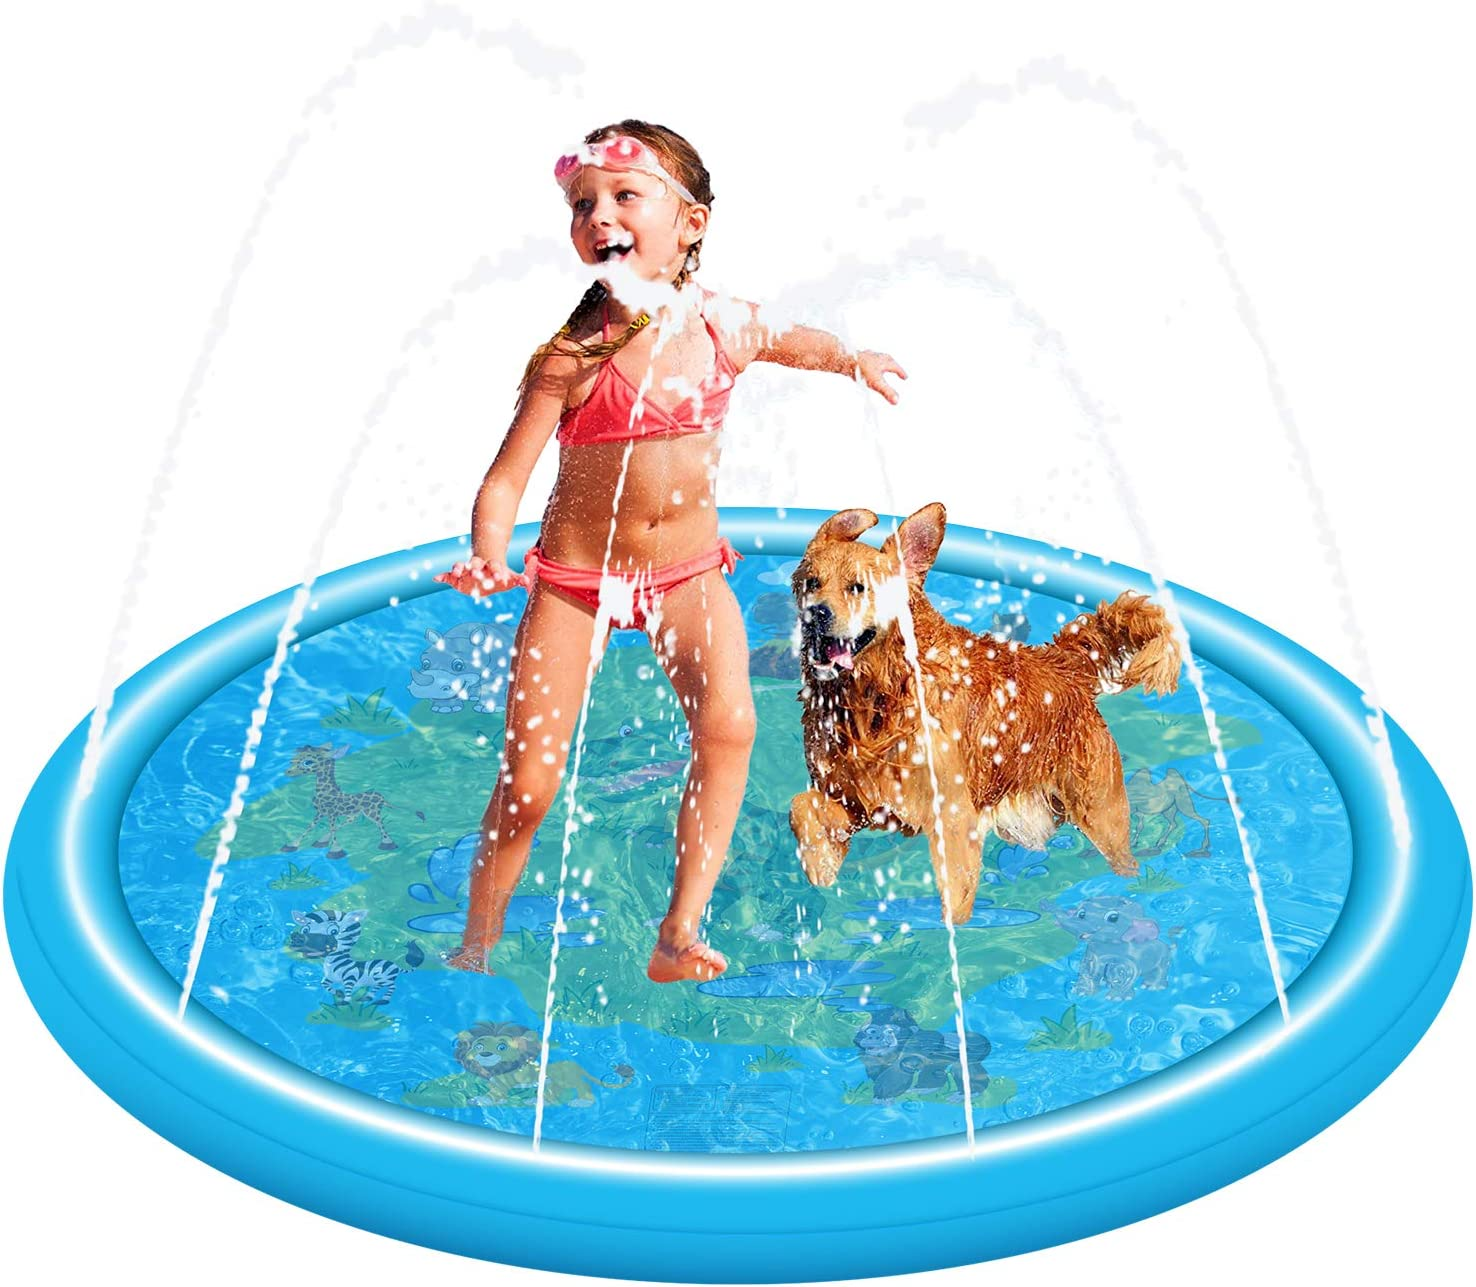 Leaflai Kids Sprinkler and Splash Pad Inflatable Wading Pool Water Mat for Children Toddlers Baby Summer Outdoor Play Toys Blue, Dinosaur